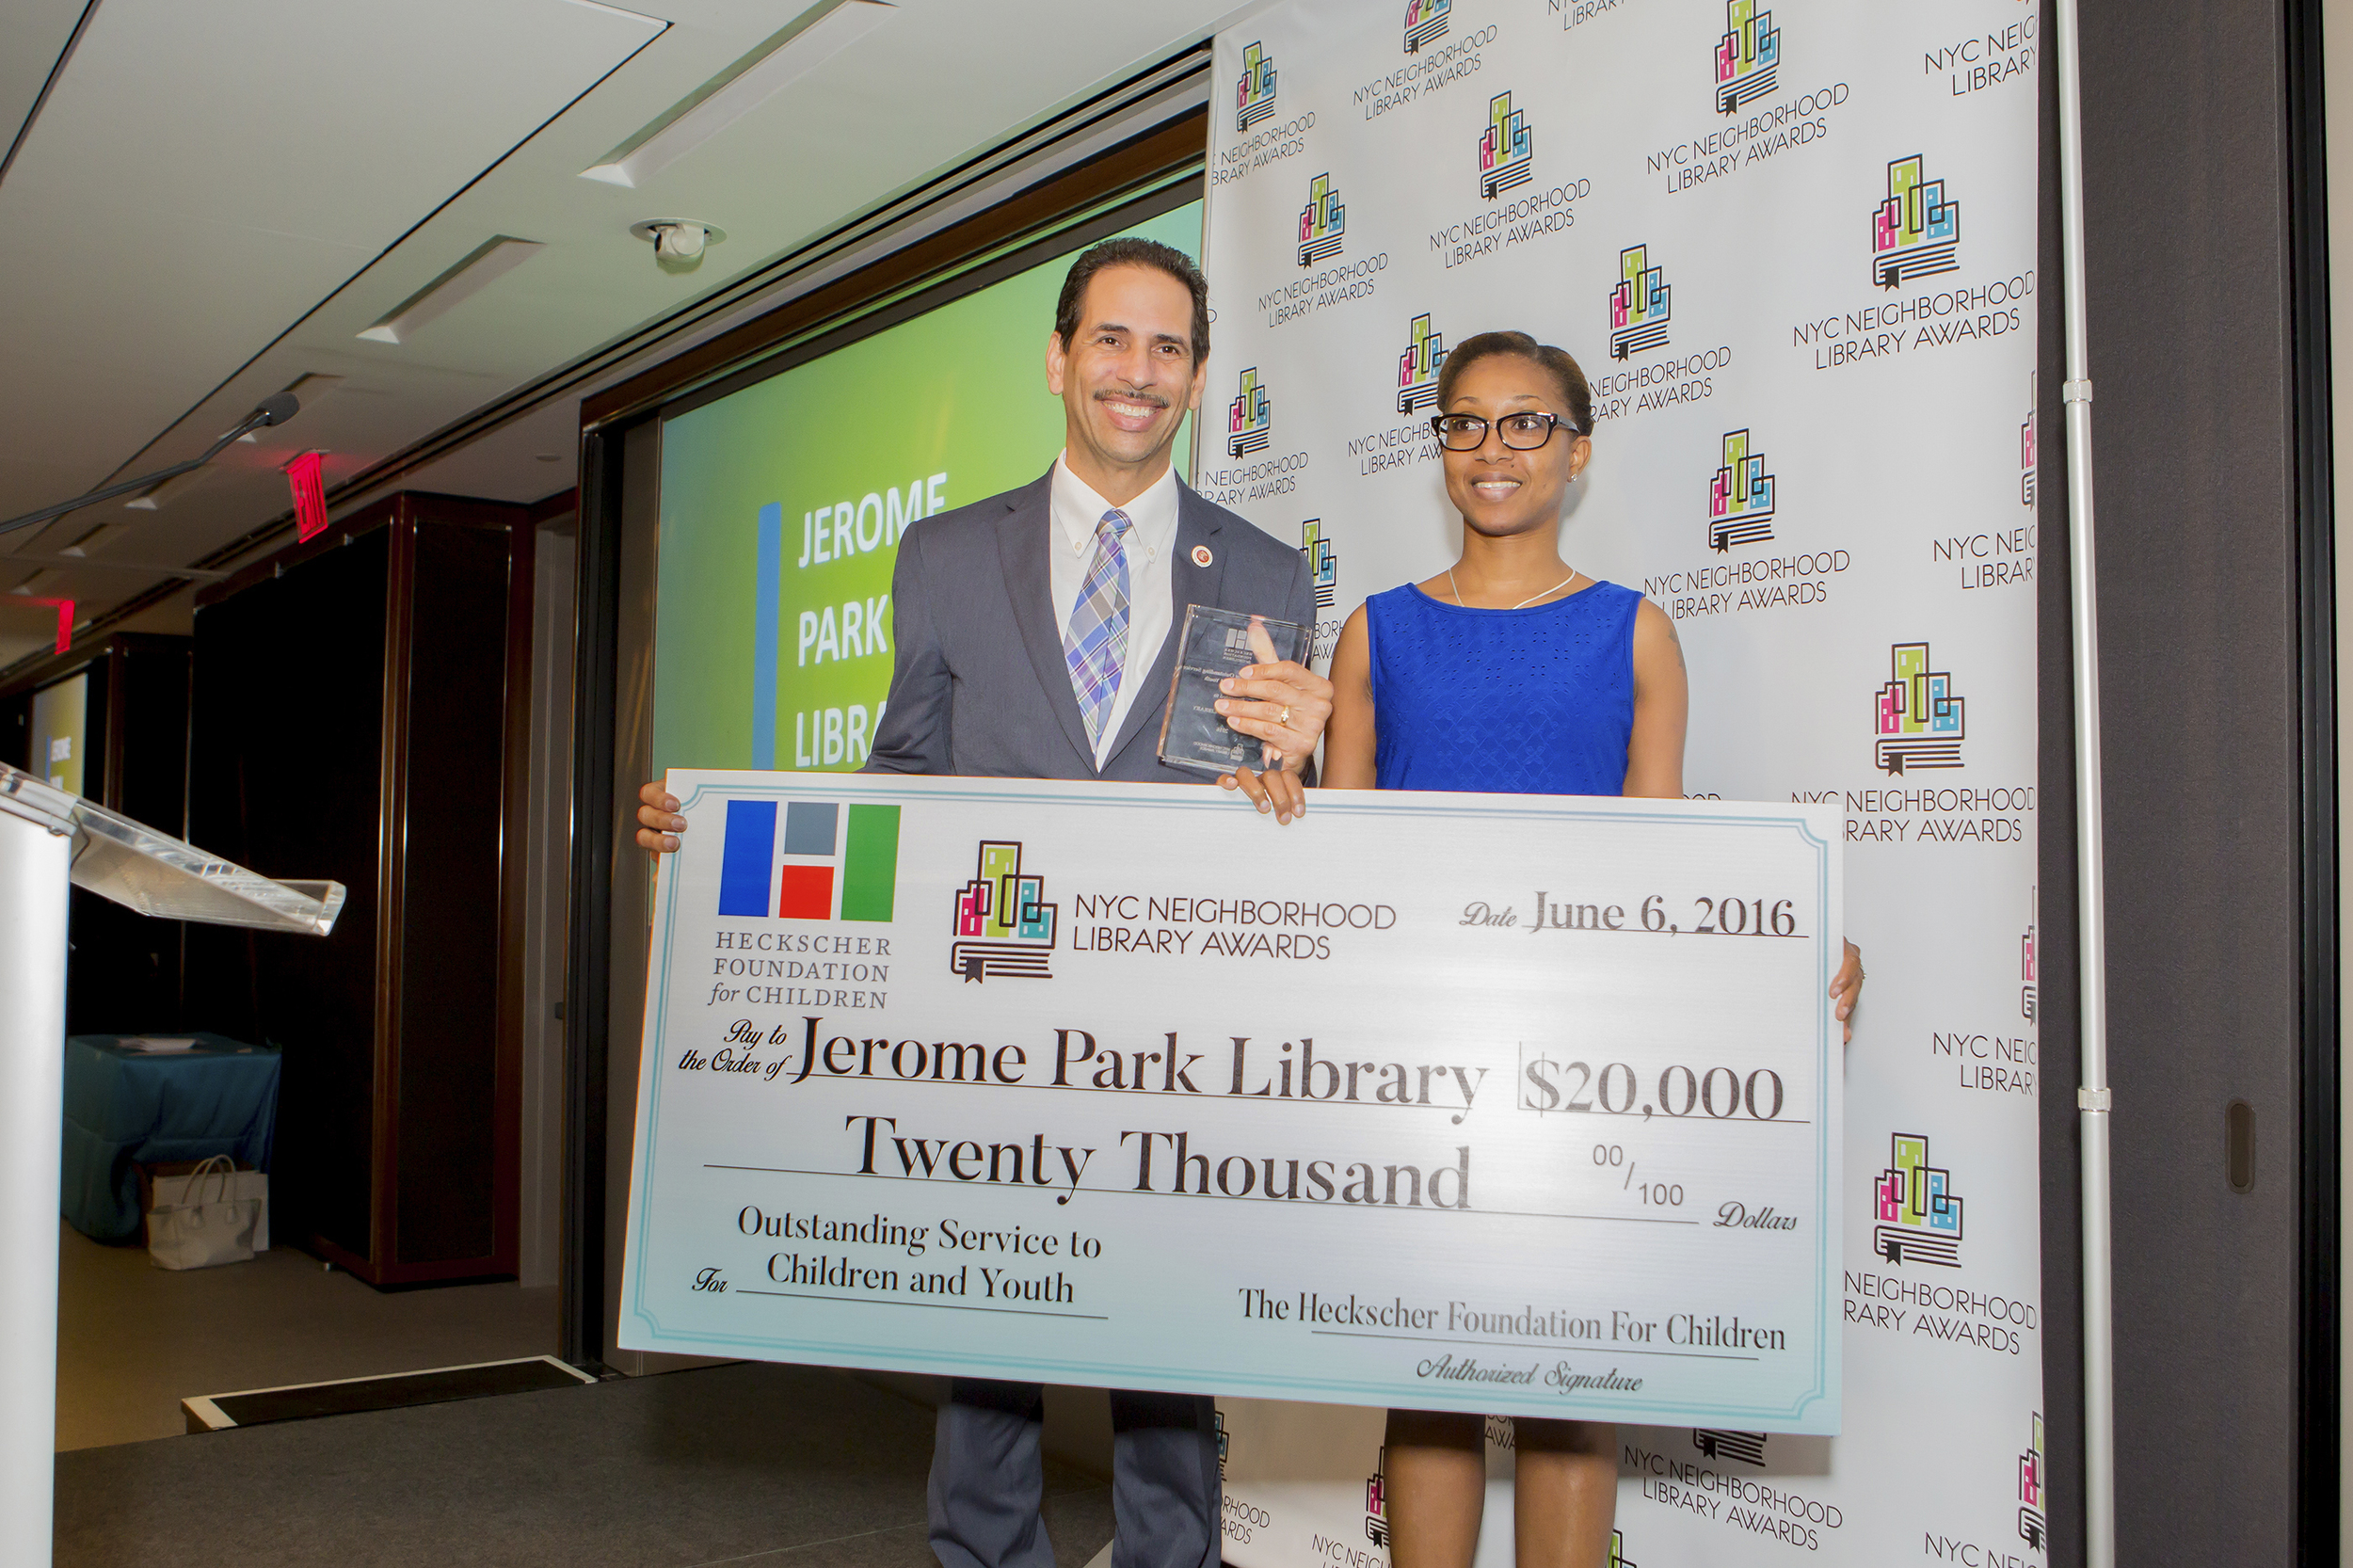 Council Member Fernando Cabrera presents the Heckscher Prize for Outstanding Service to Children and Youth to Nicola McDonald, Manager of the Jerome Park Library